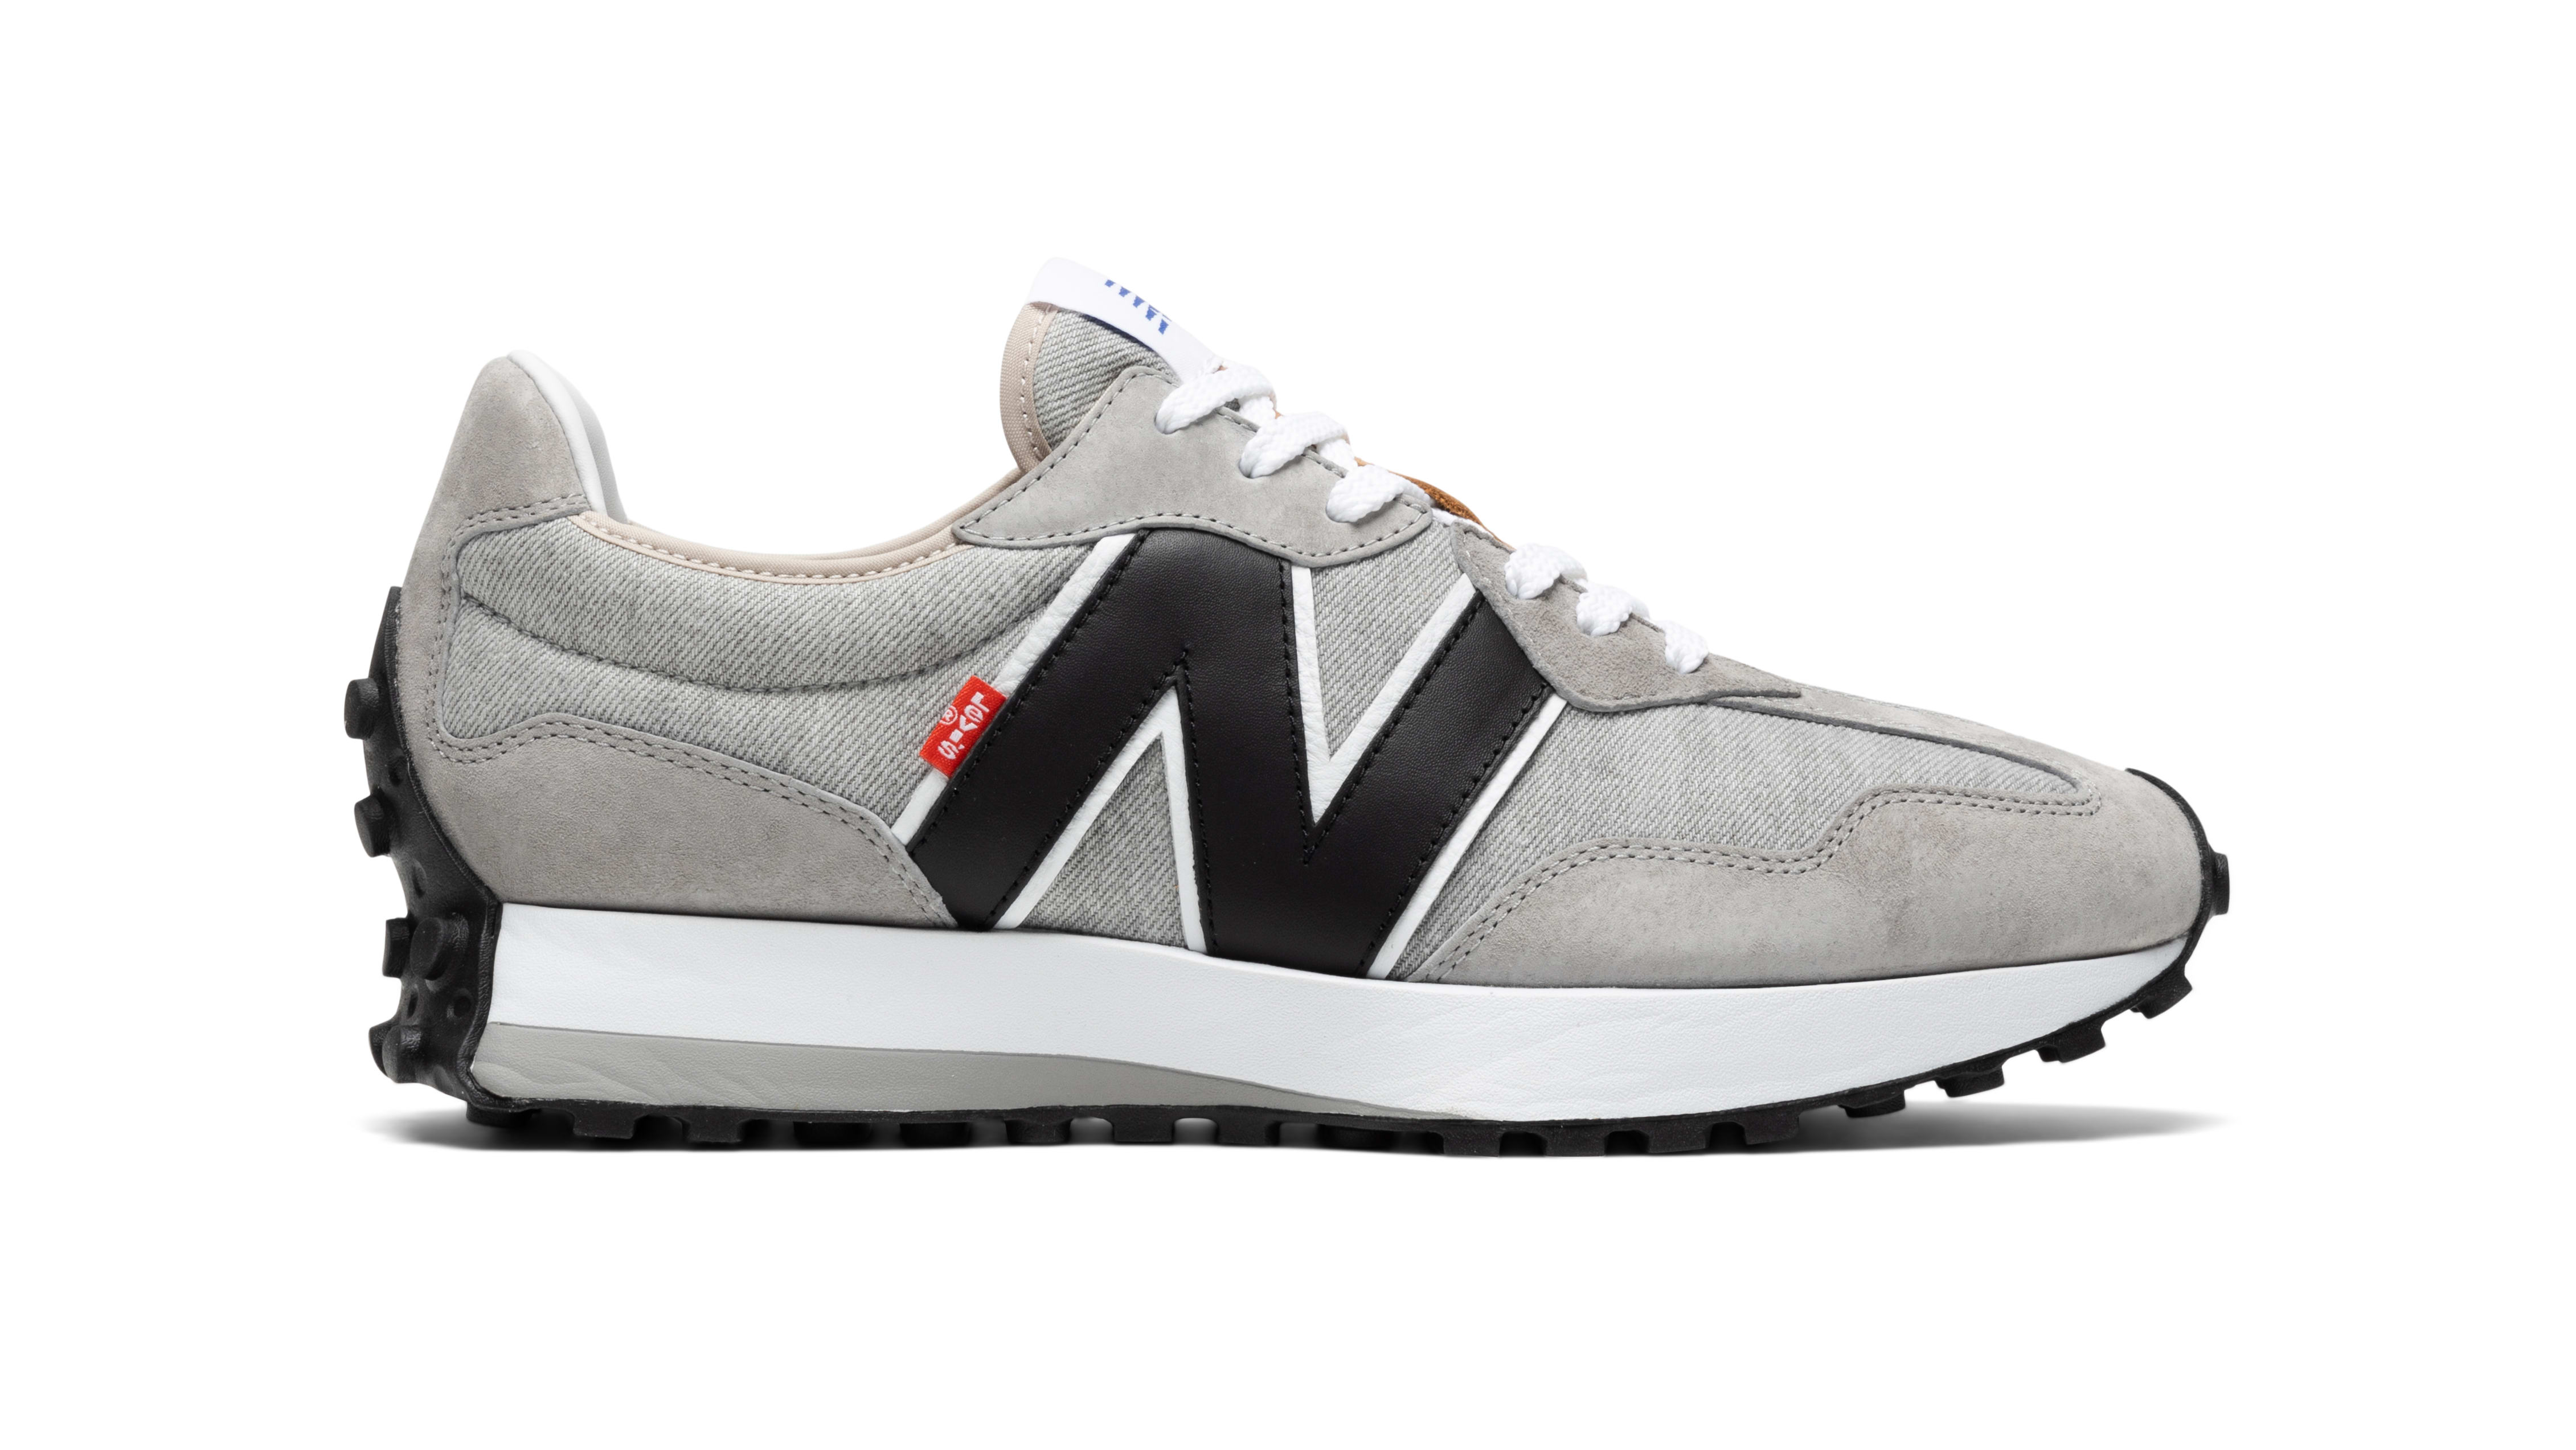 Levi's x New Balance 327 'Grey' Lateral